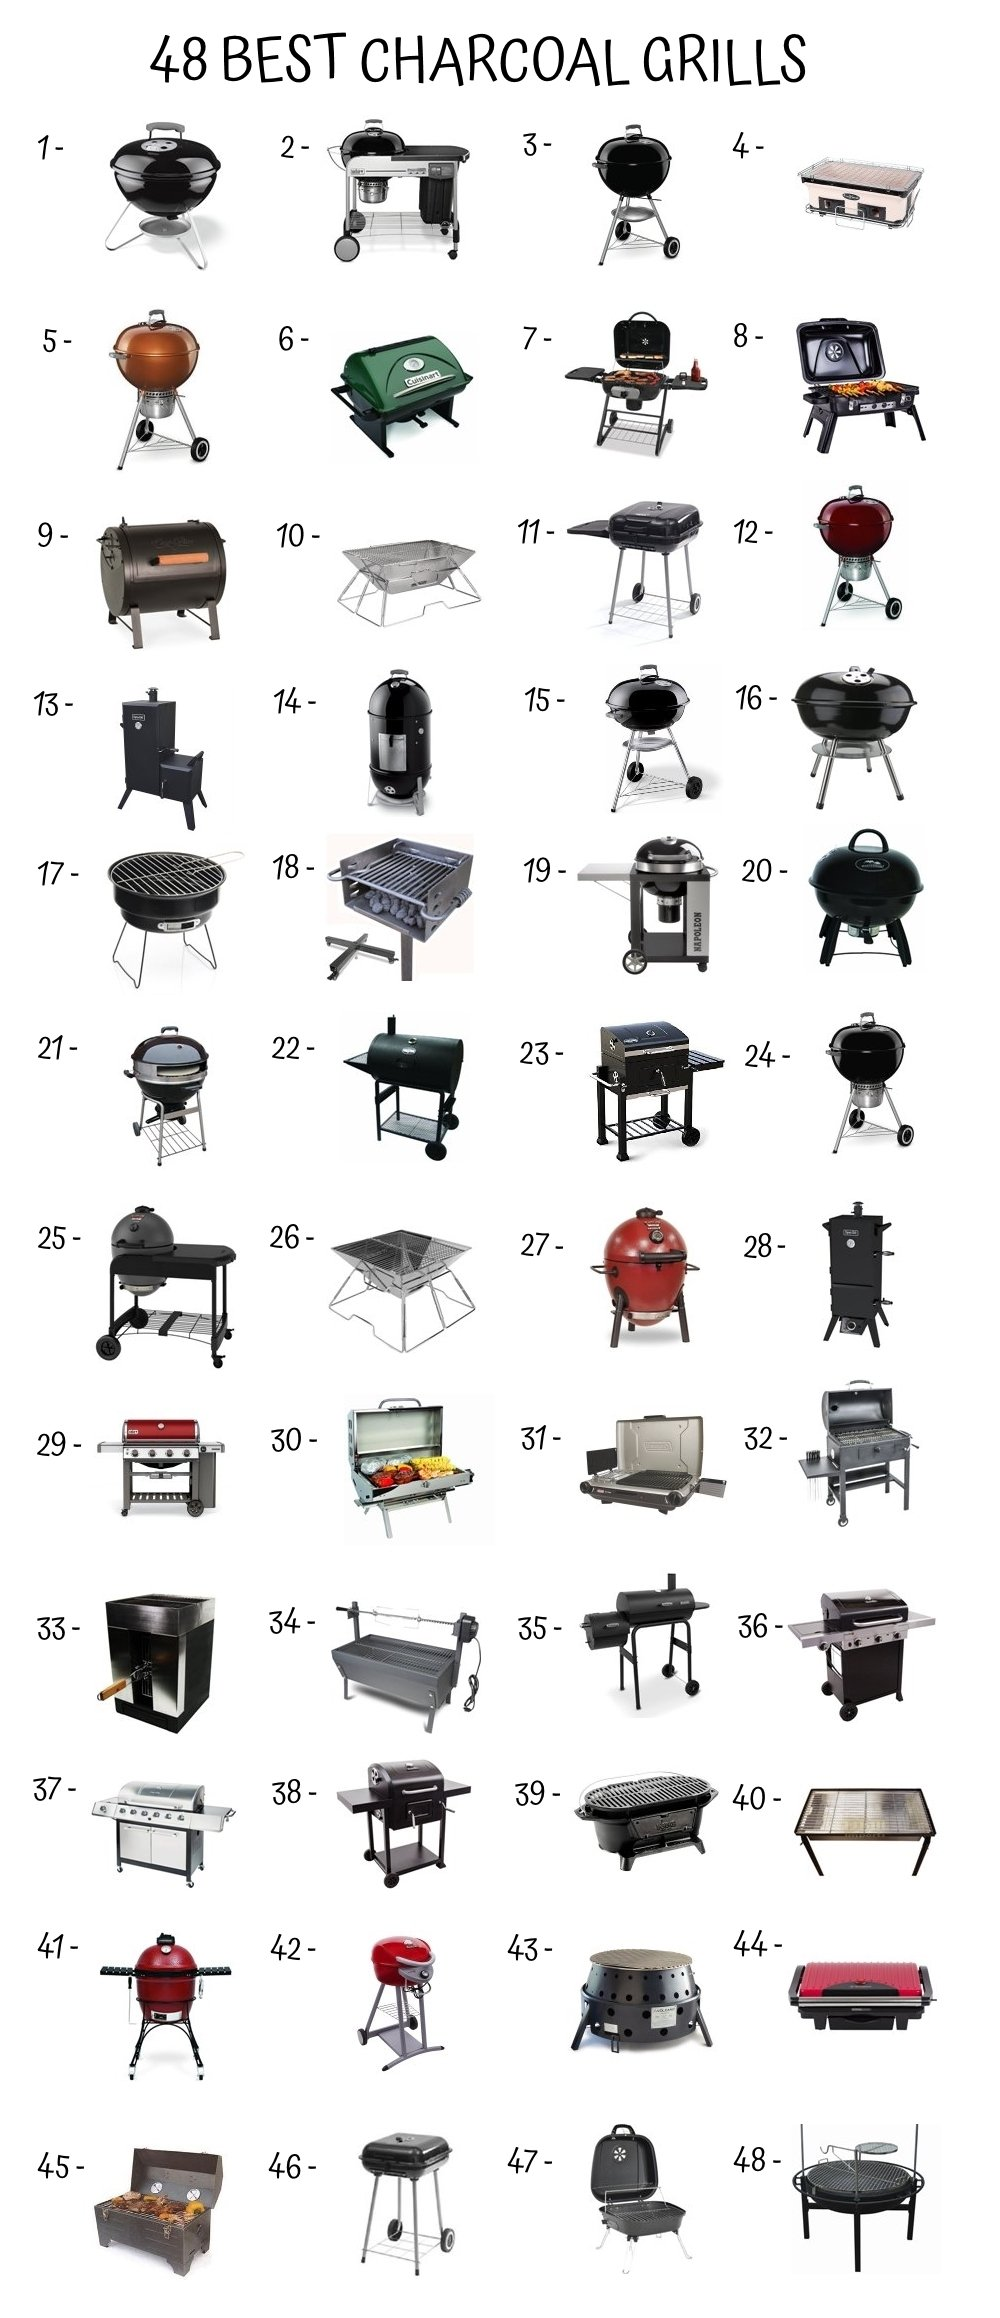 5 Things To Know Before You Buy A Charcoal Grill Home